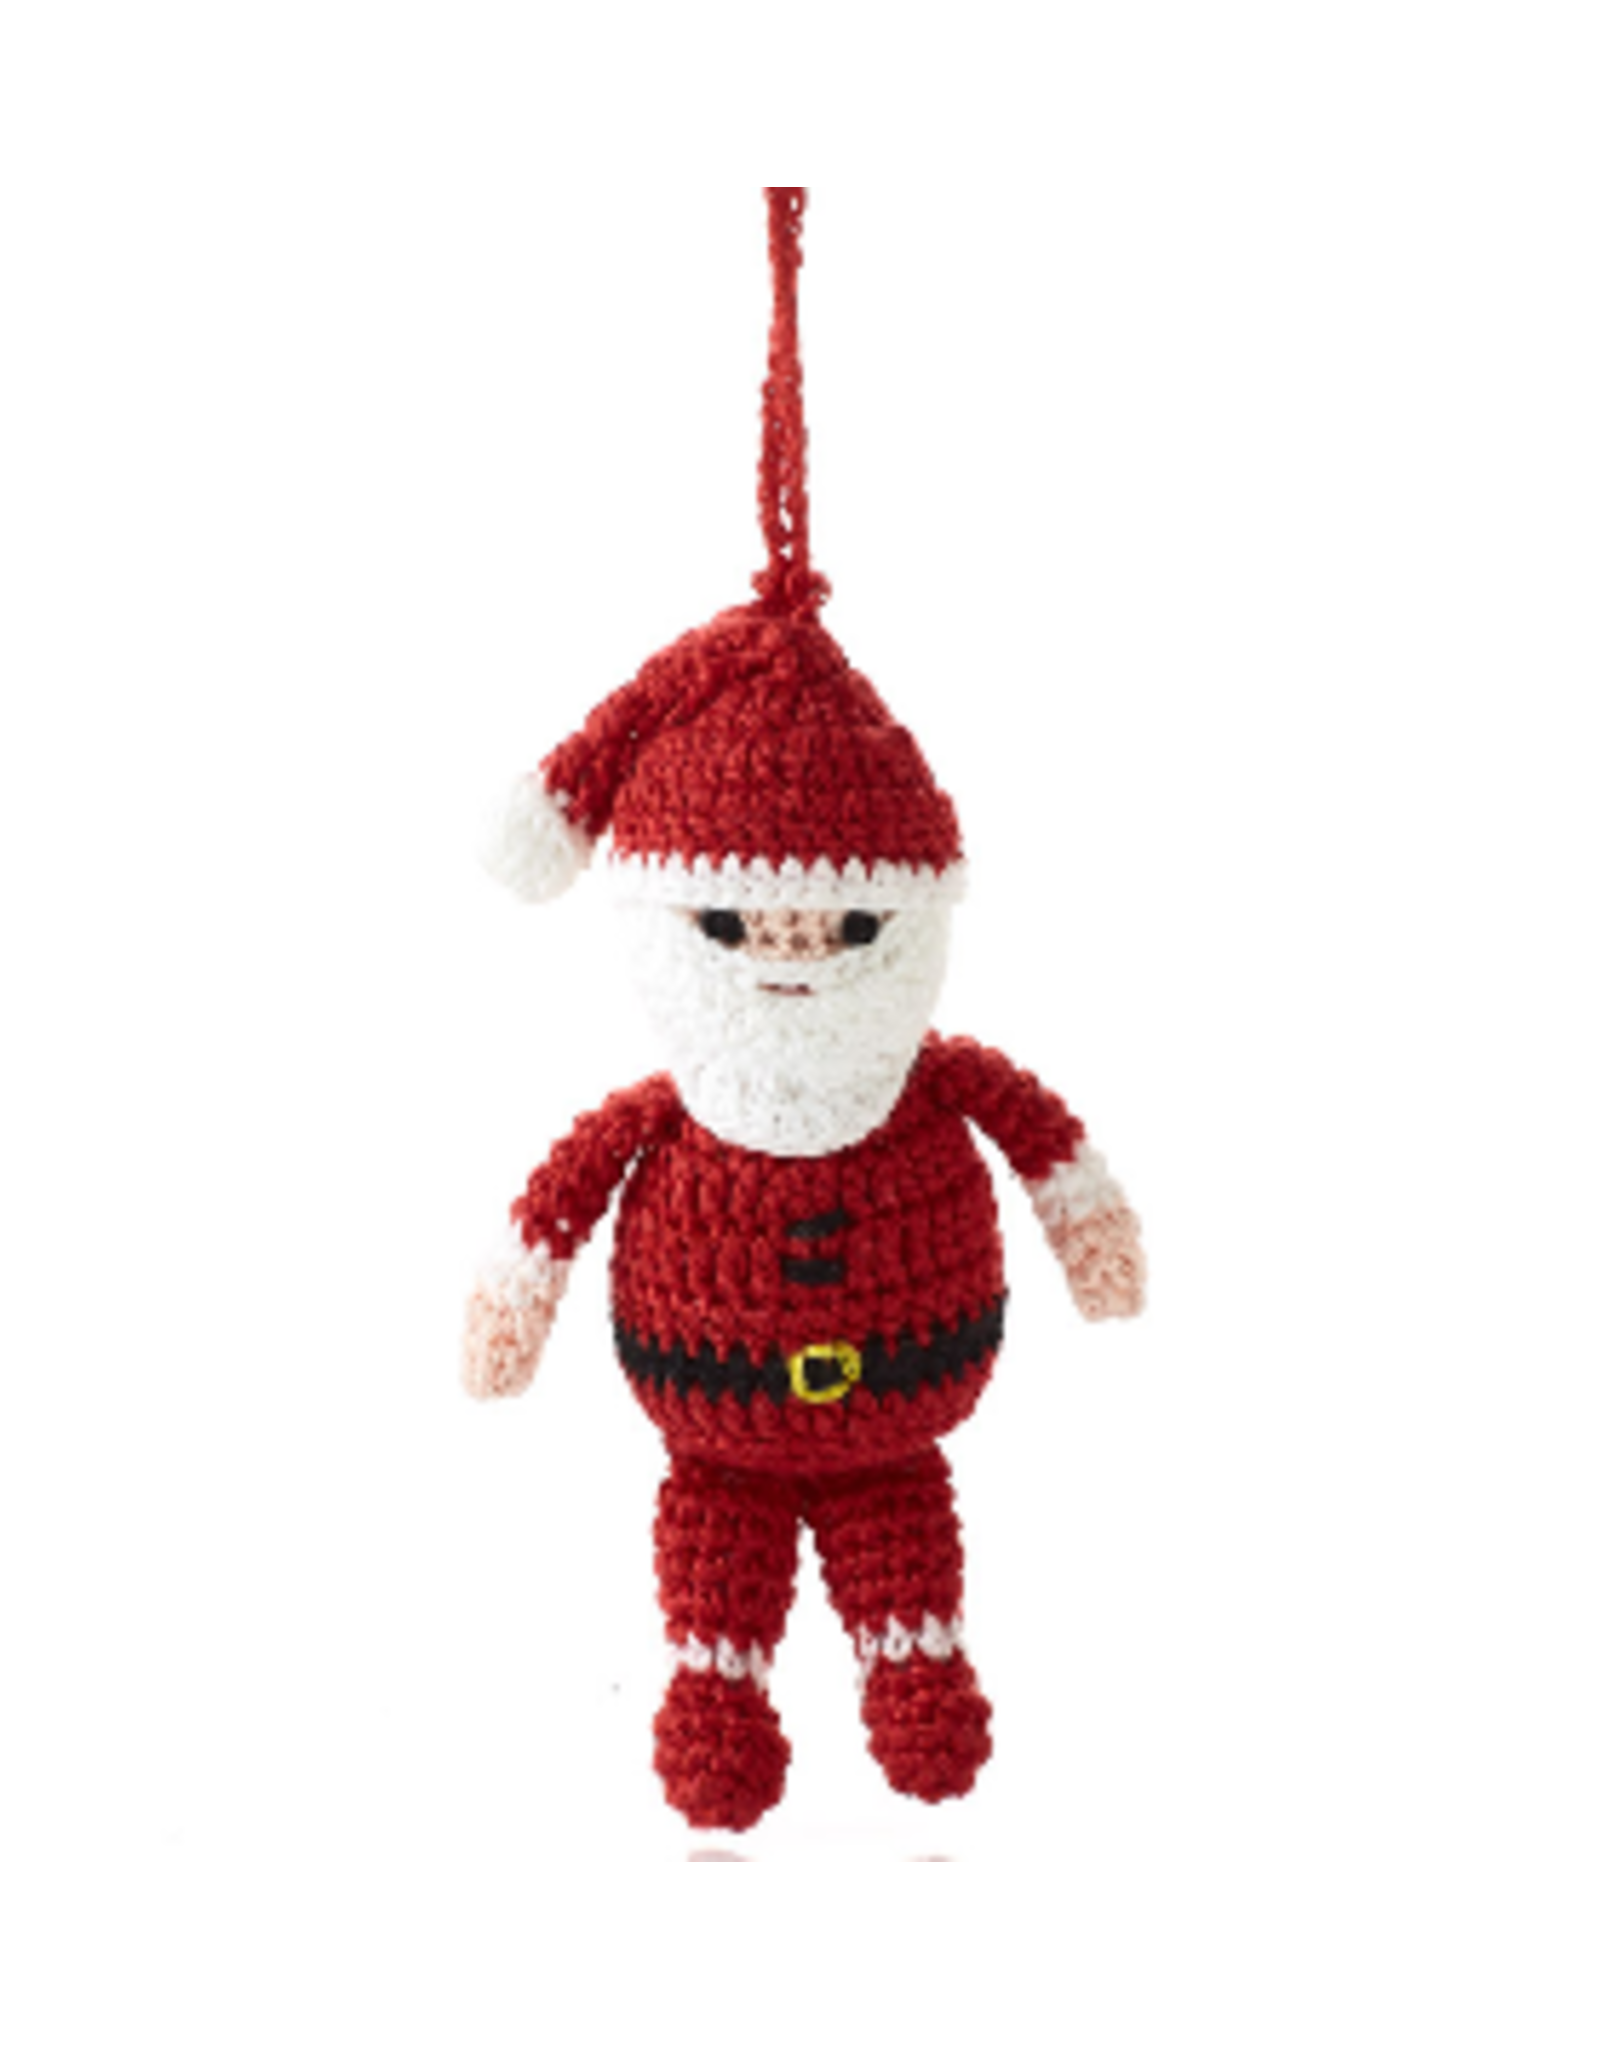 Crocheted Santa Ornament, Vietnam